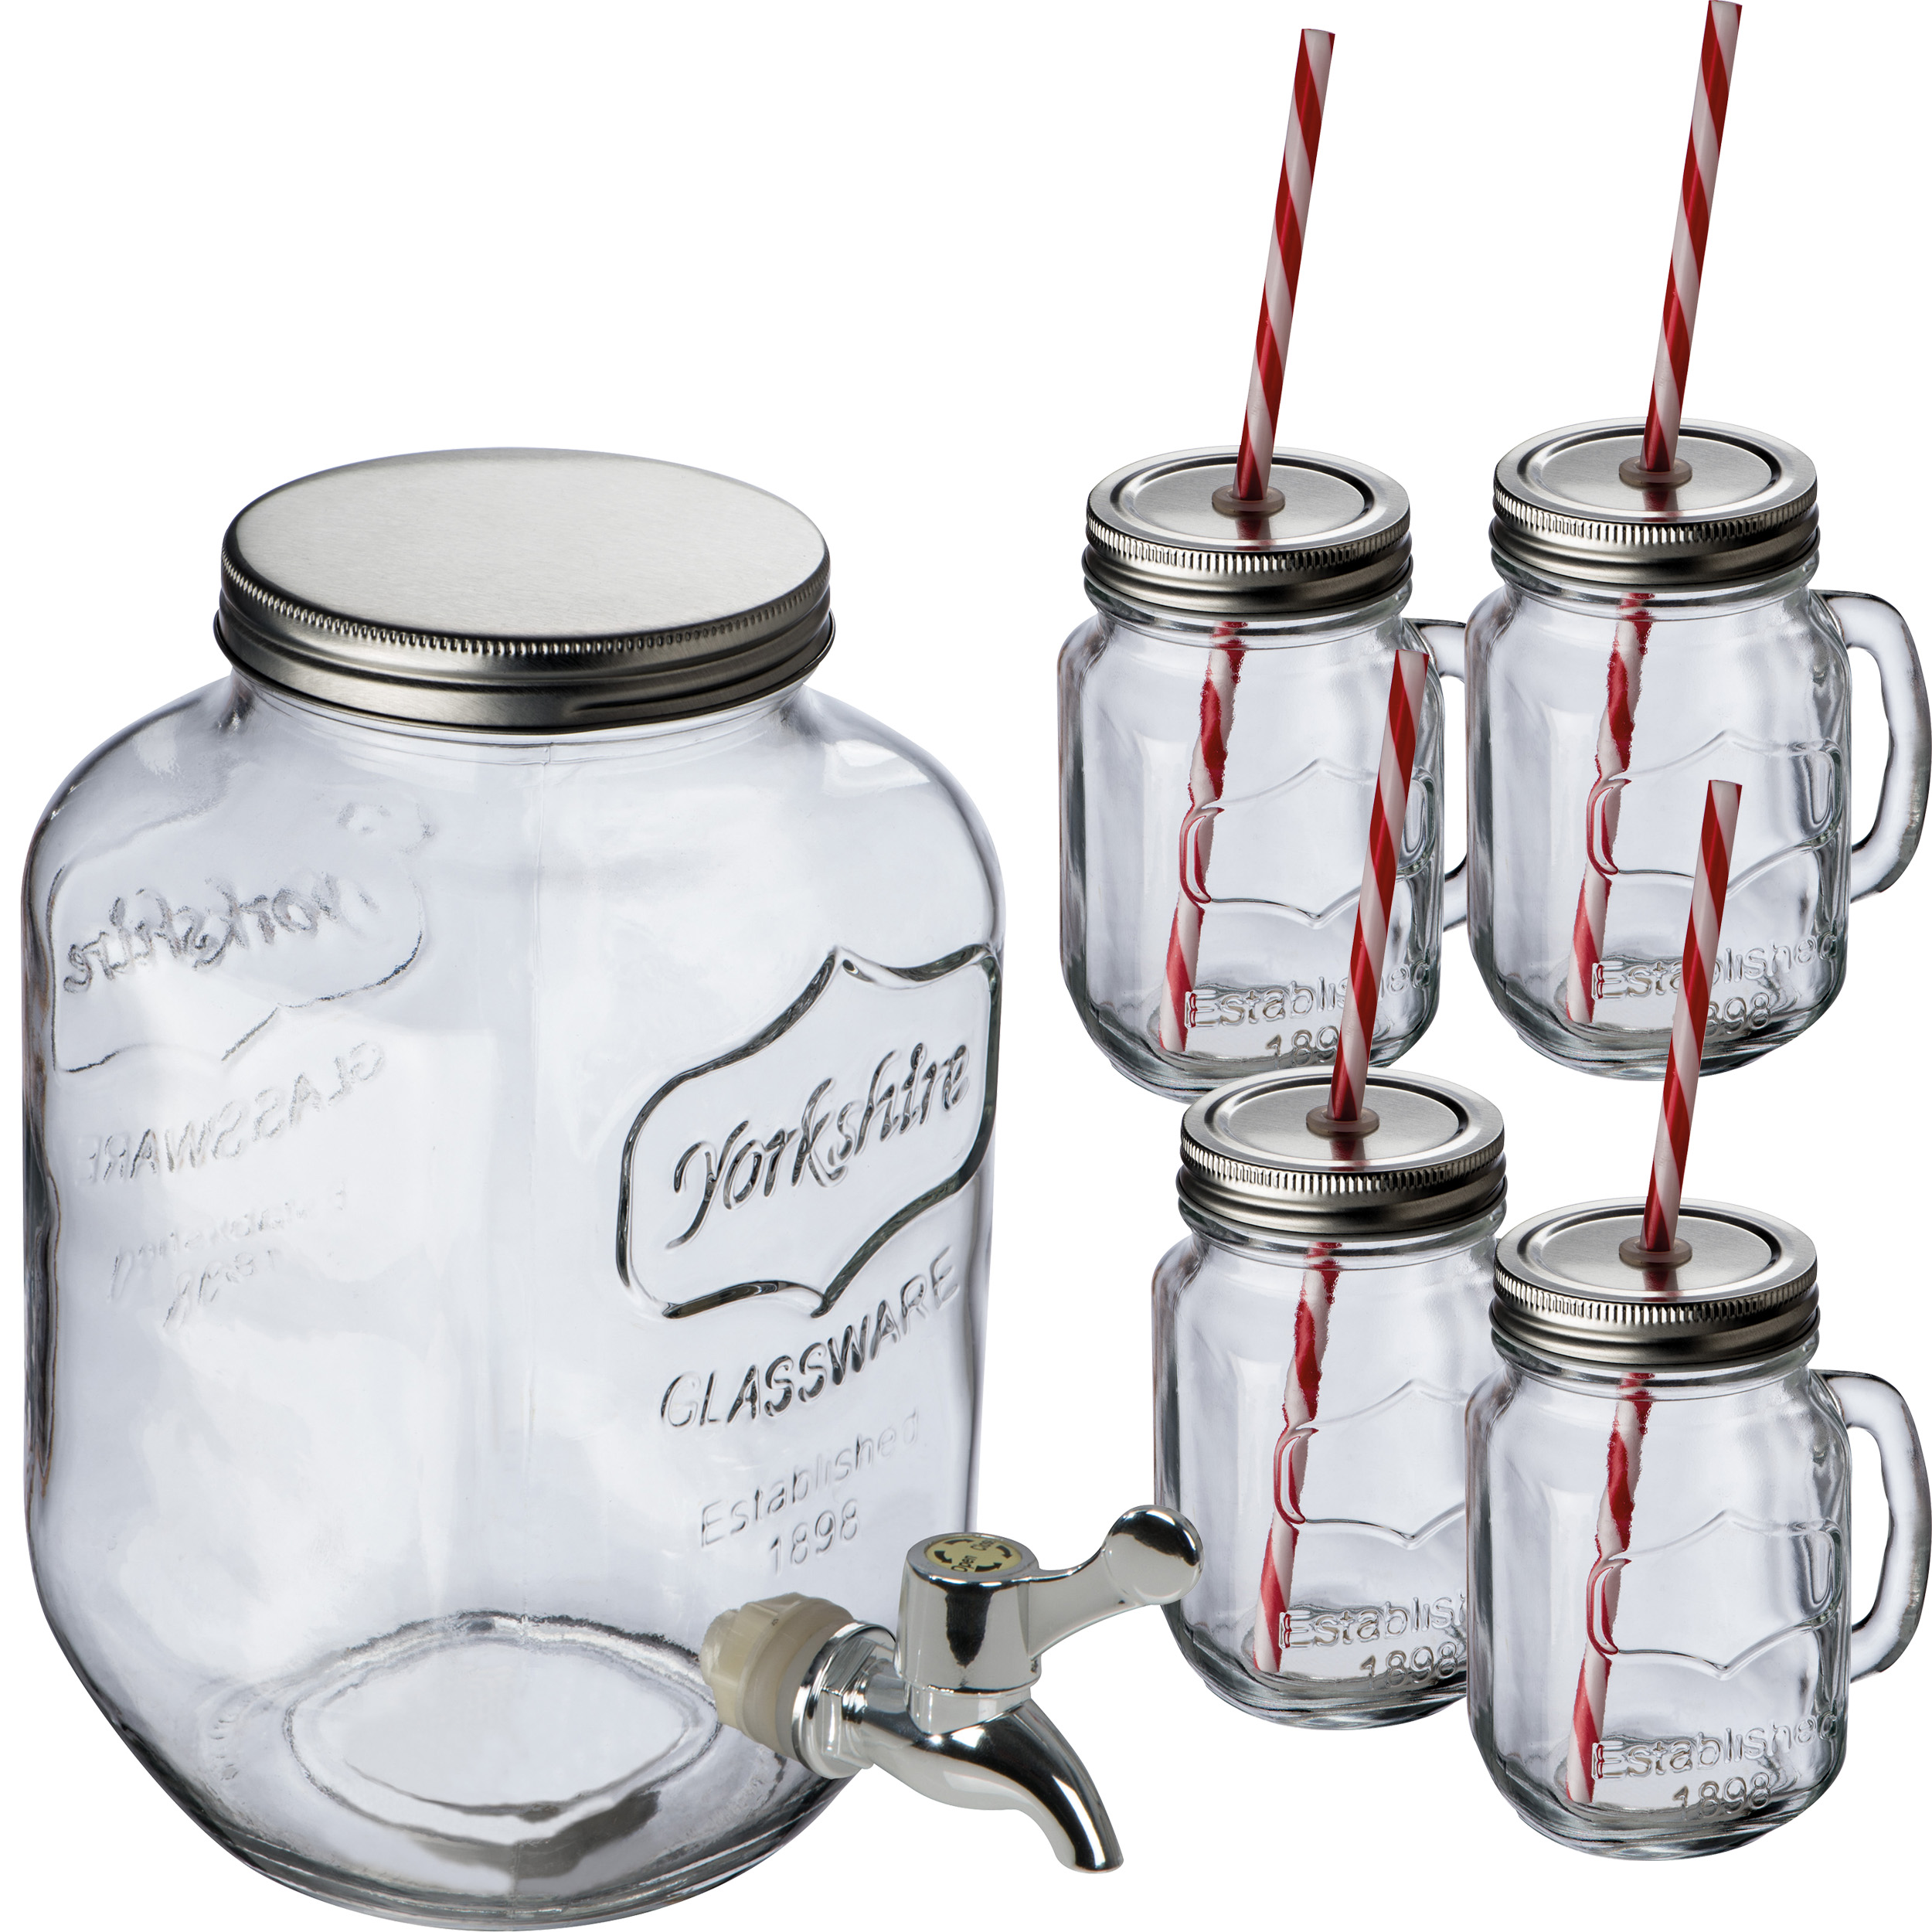 Glass dispenser with 4 jugs